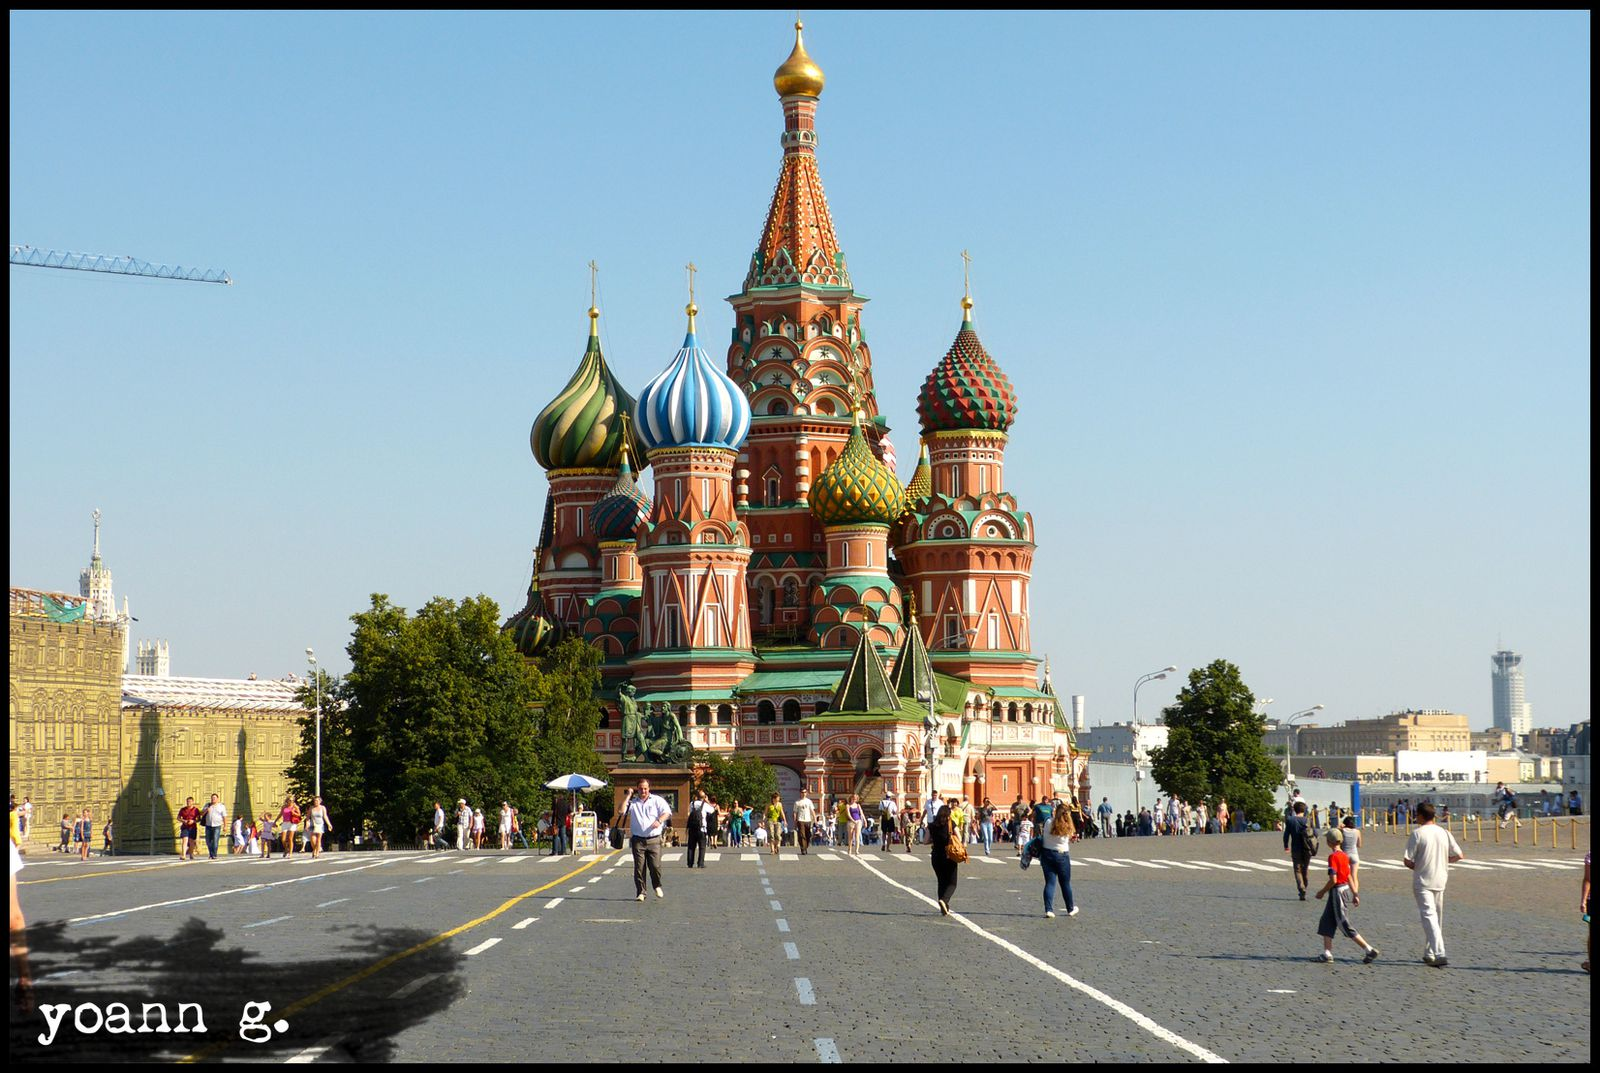 Moscou russie le blog de thedailywanderer for Architecture russe